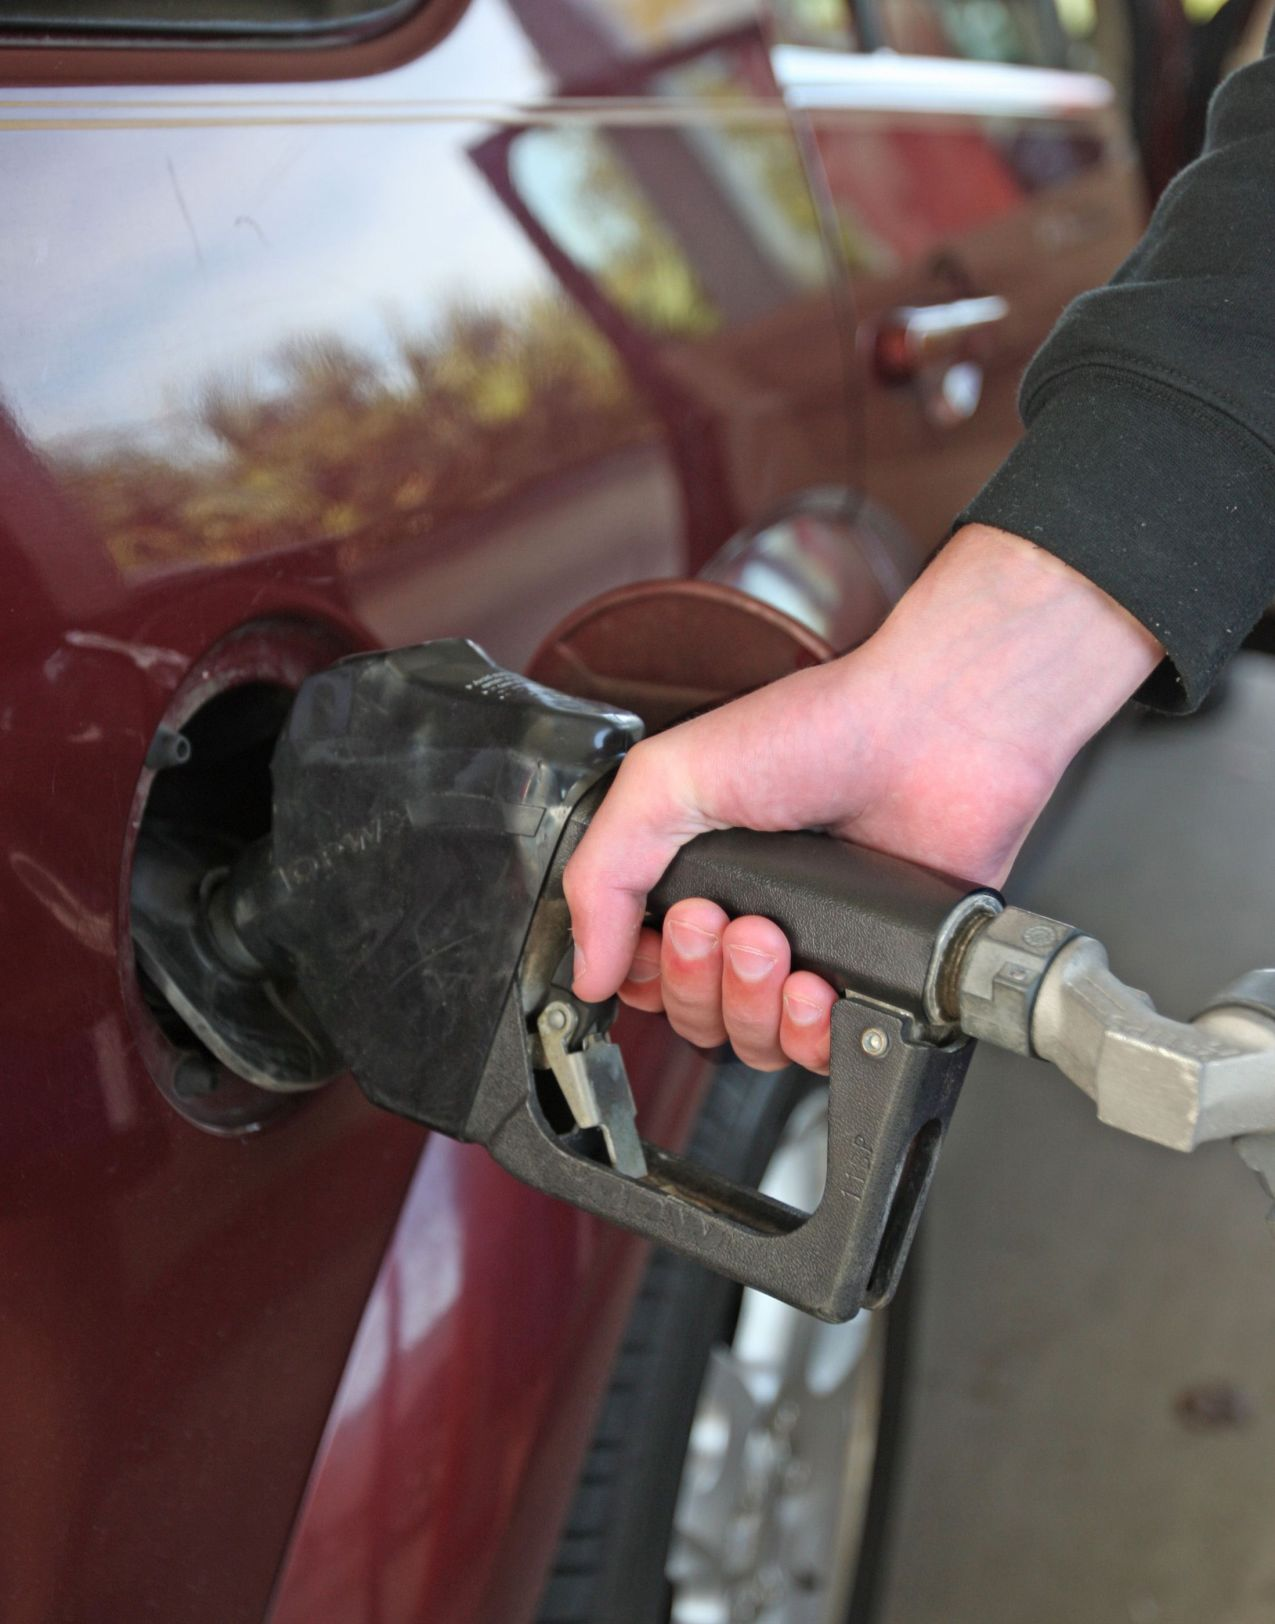 United States motorists to spend $52 billion more on gas